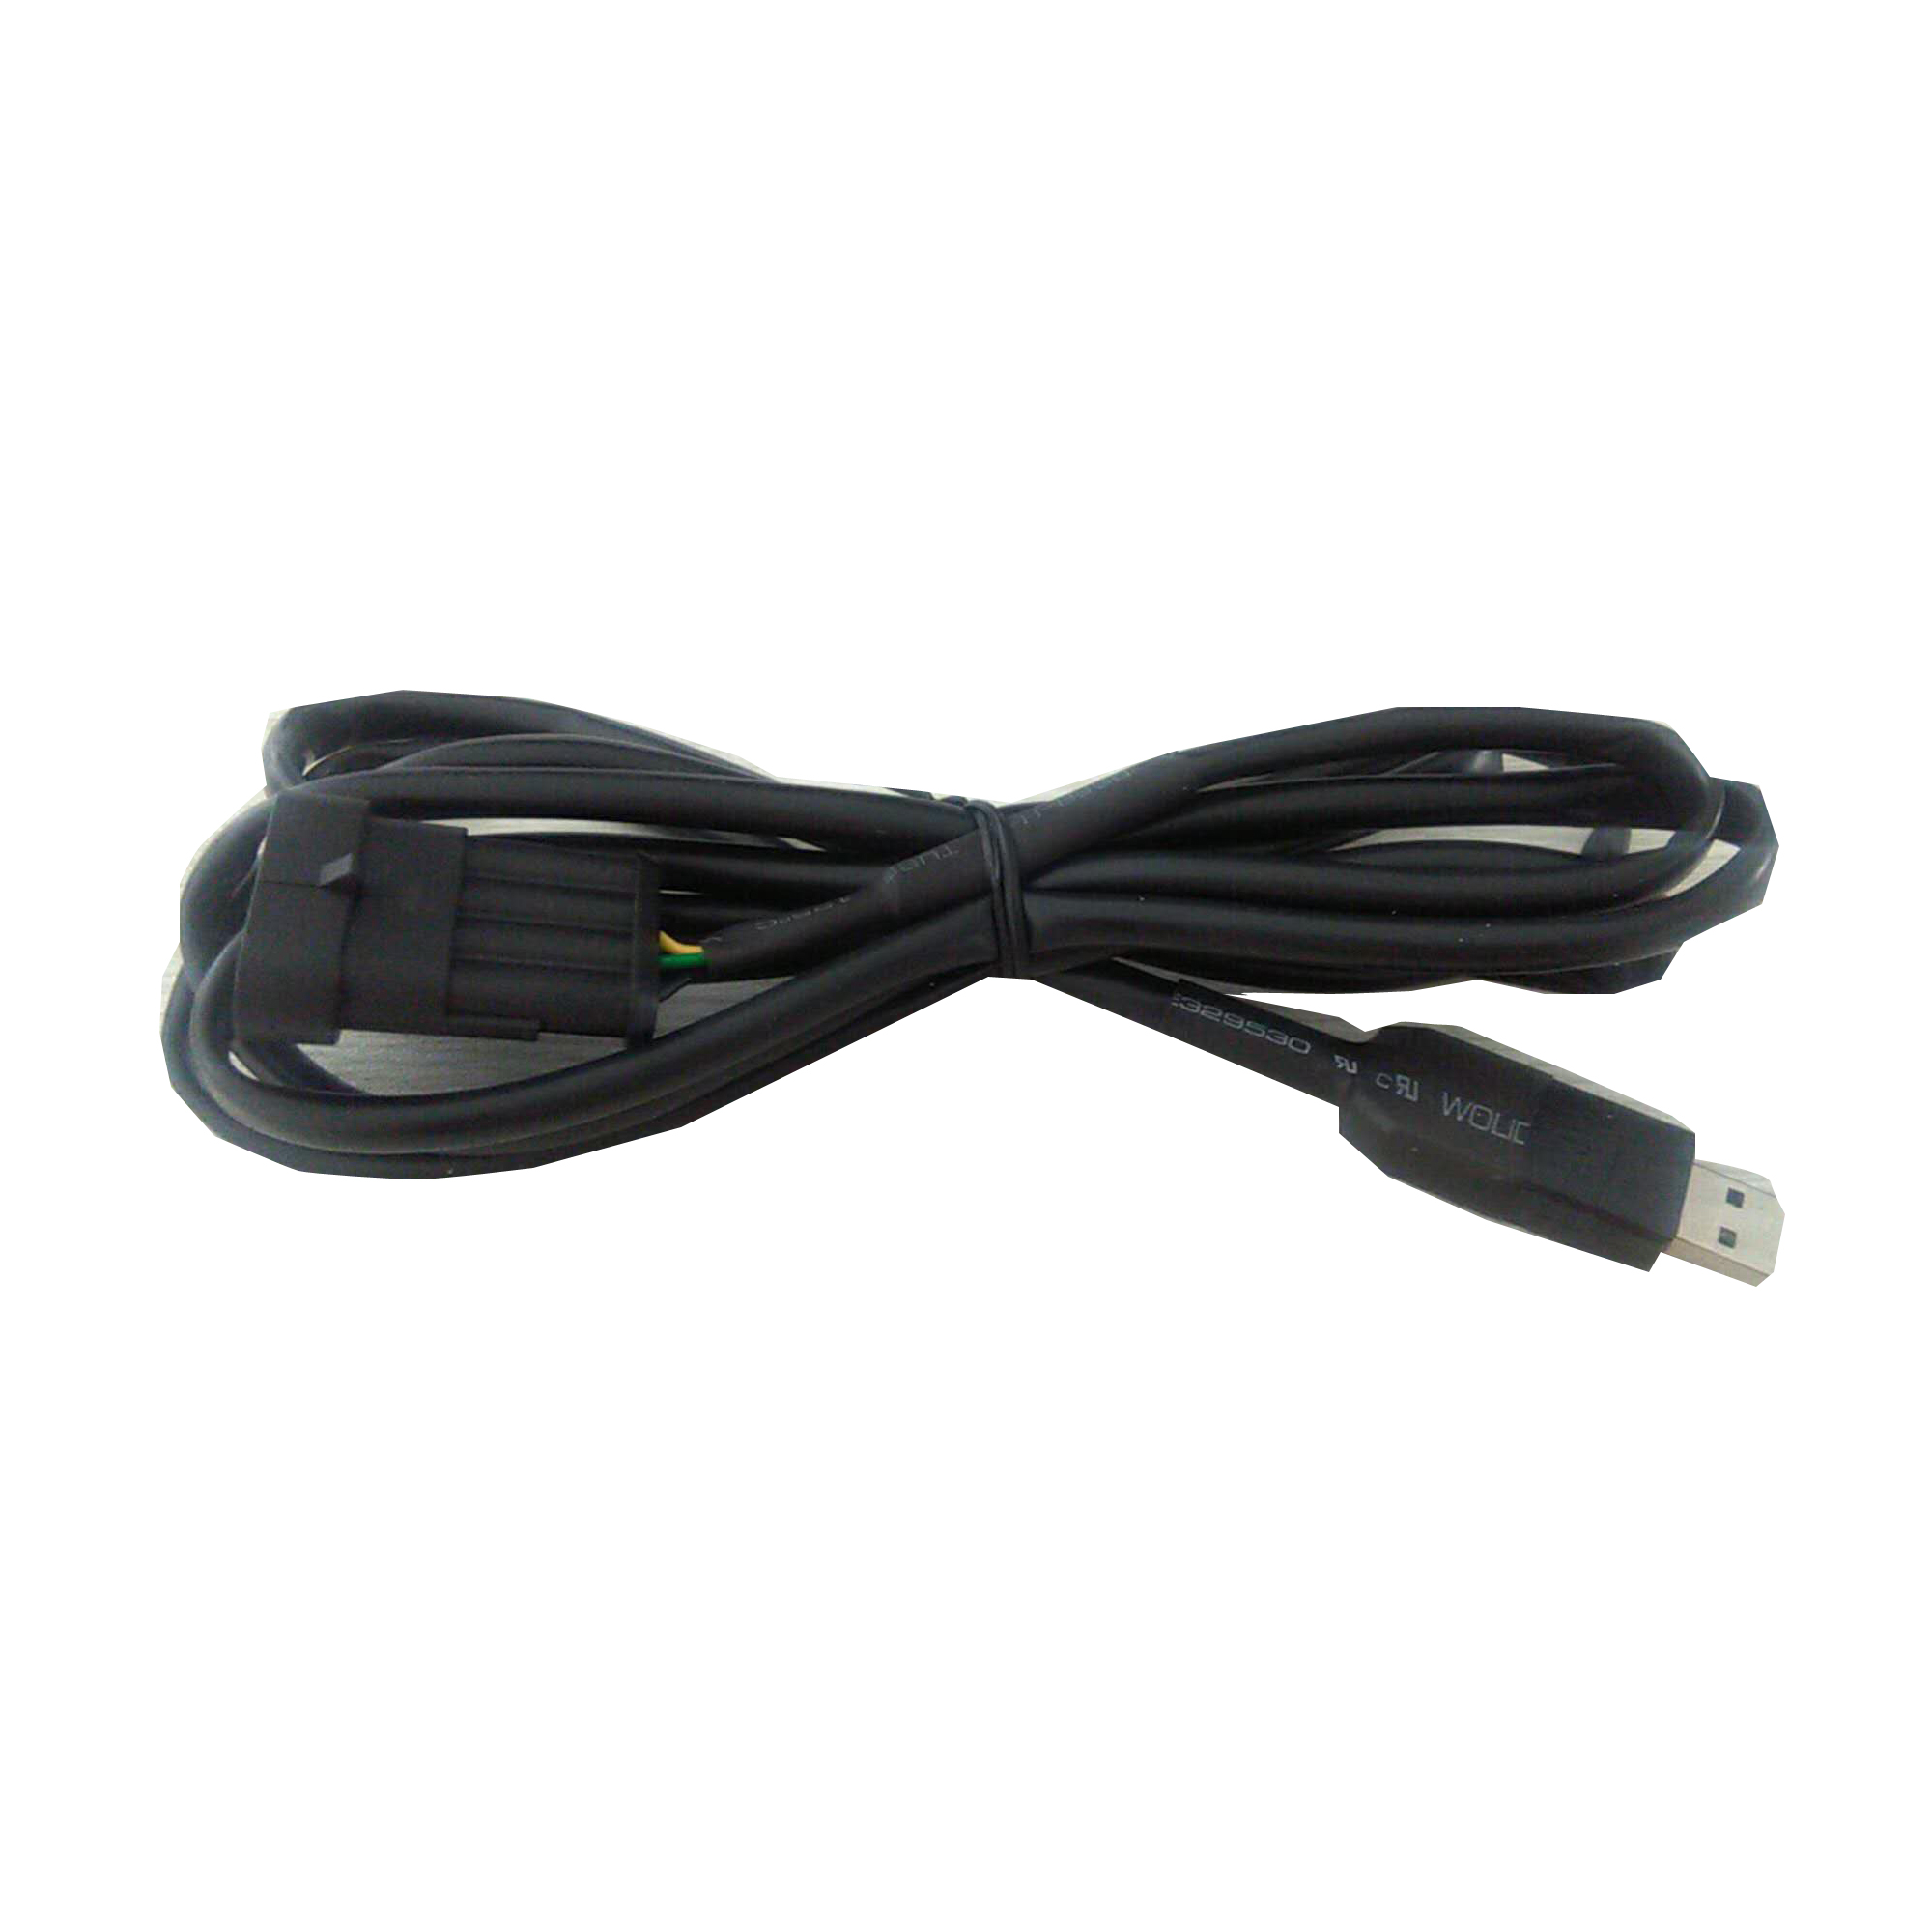 GAS ECU To PC USB Cable Debugging Cable Diagnosis Cable  For AEB MP48 AC STAG 100 200 300 400 AC300